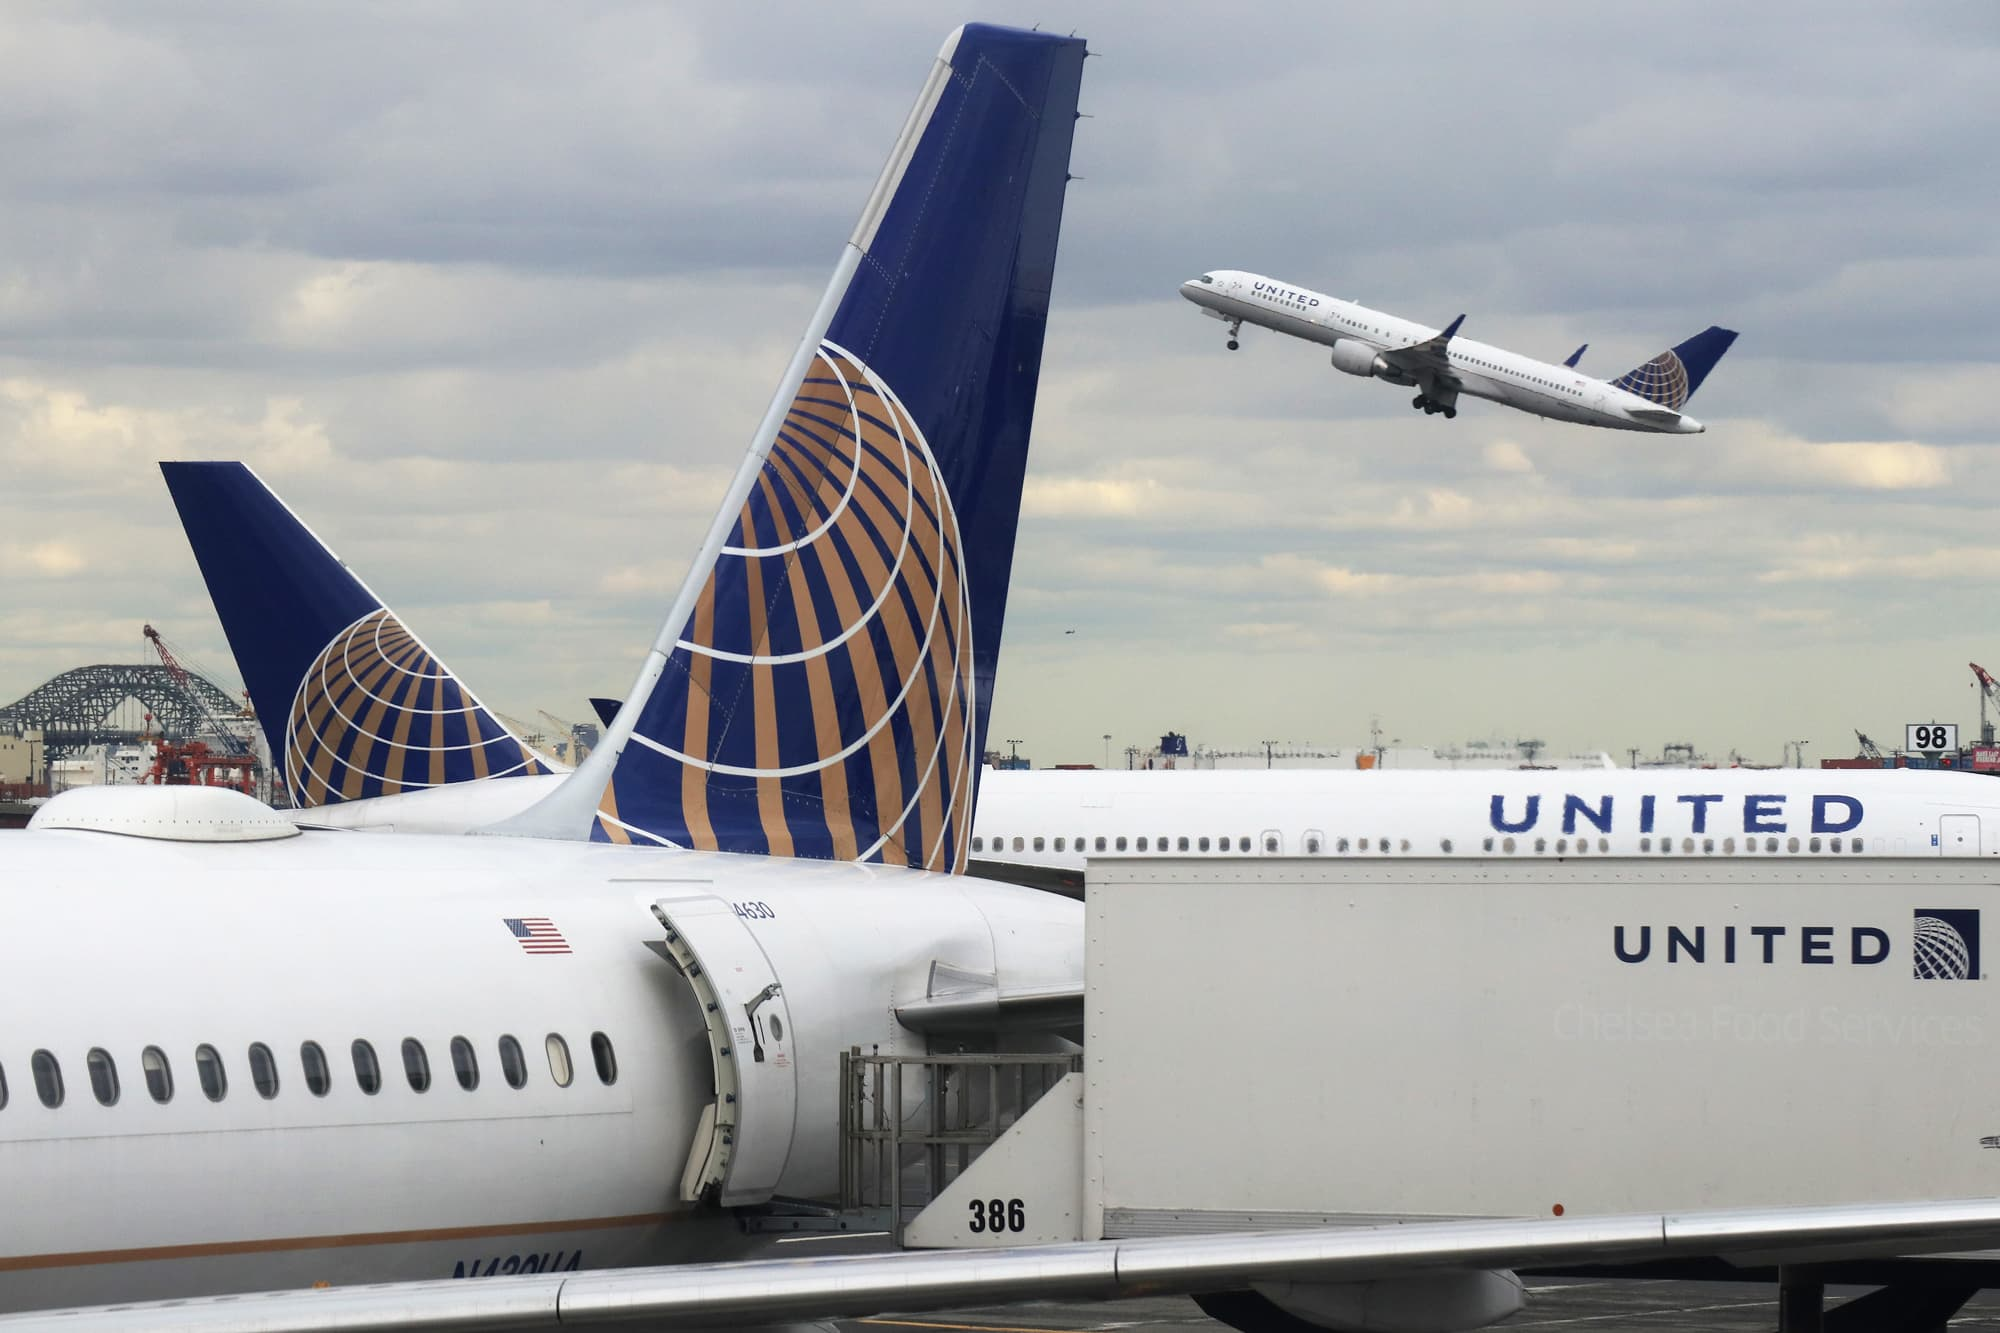 Coronavirus Drives United Airlines Us Bookings Down 70,Sitting Area In Master Bedroom Ideas